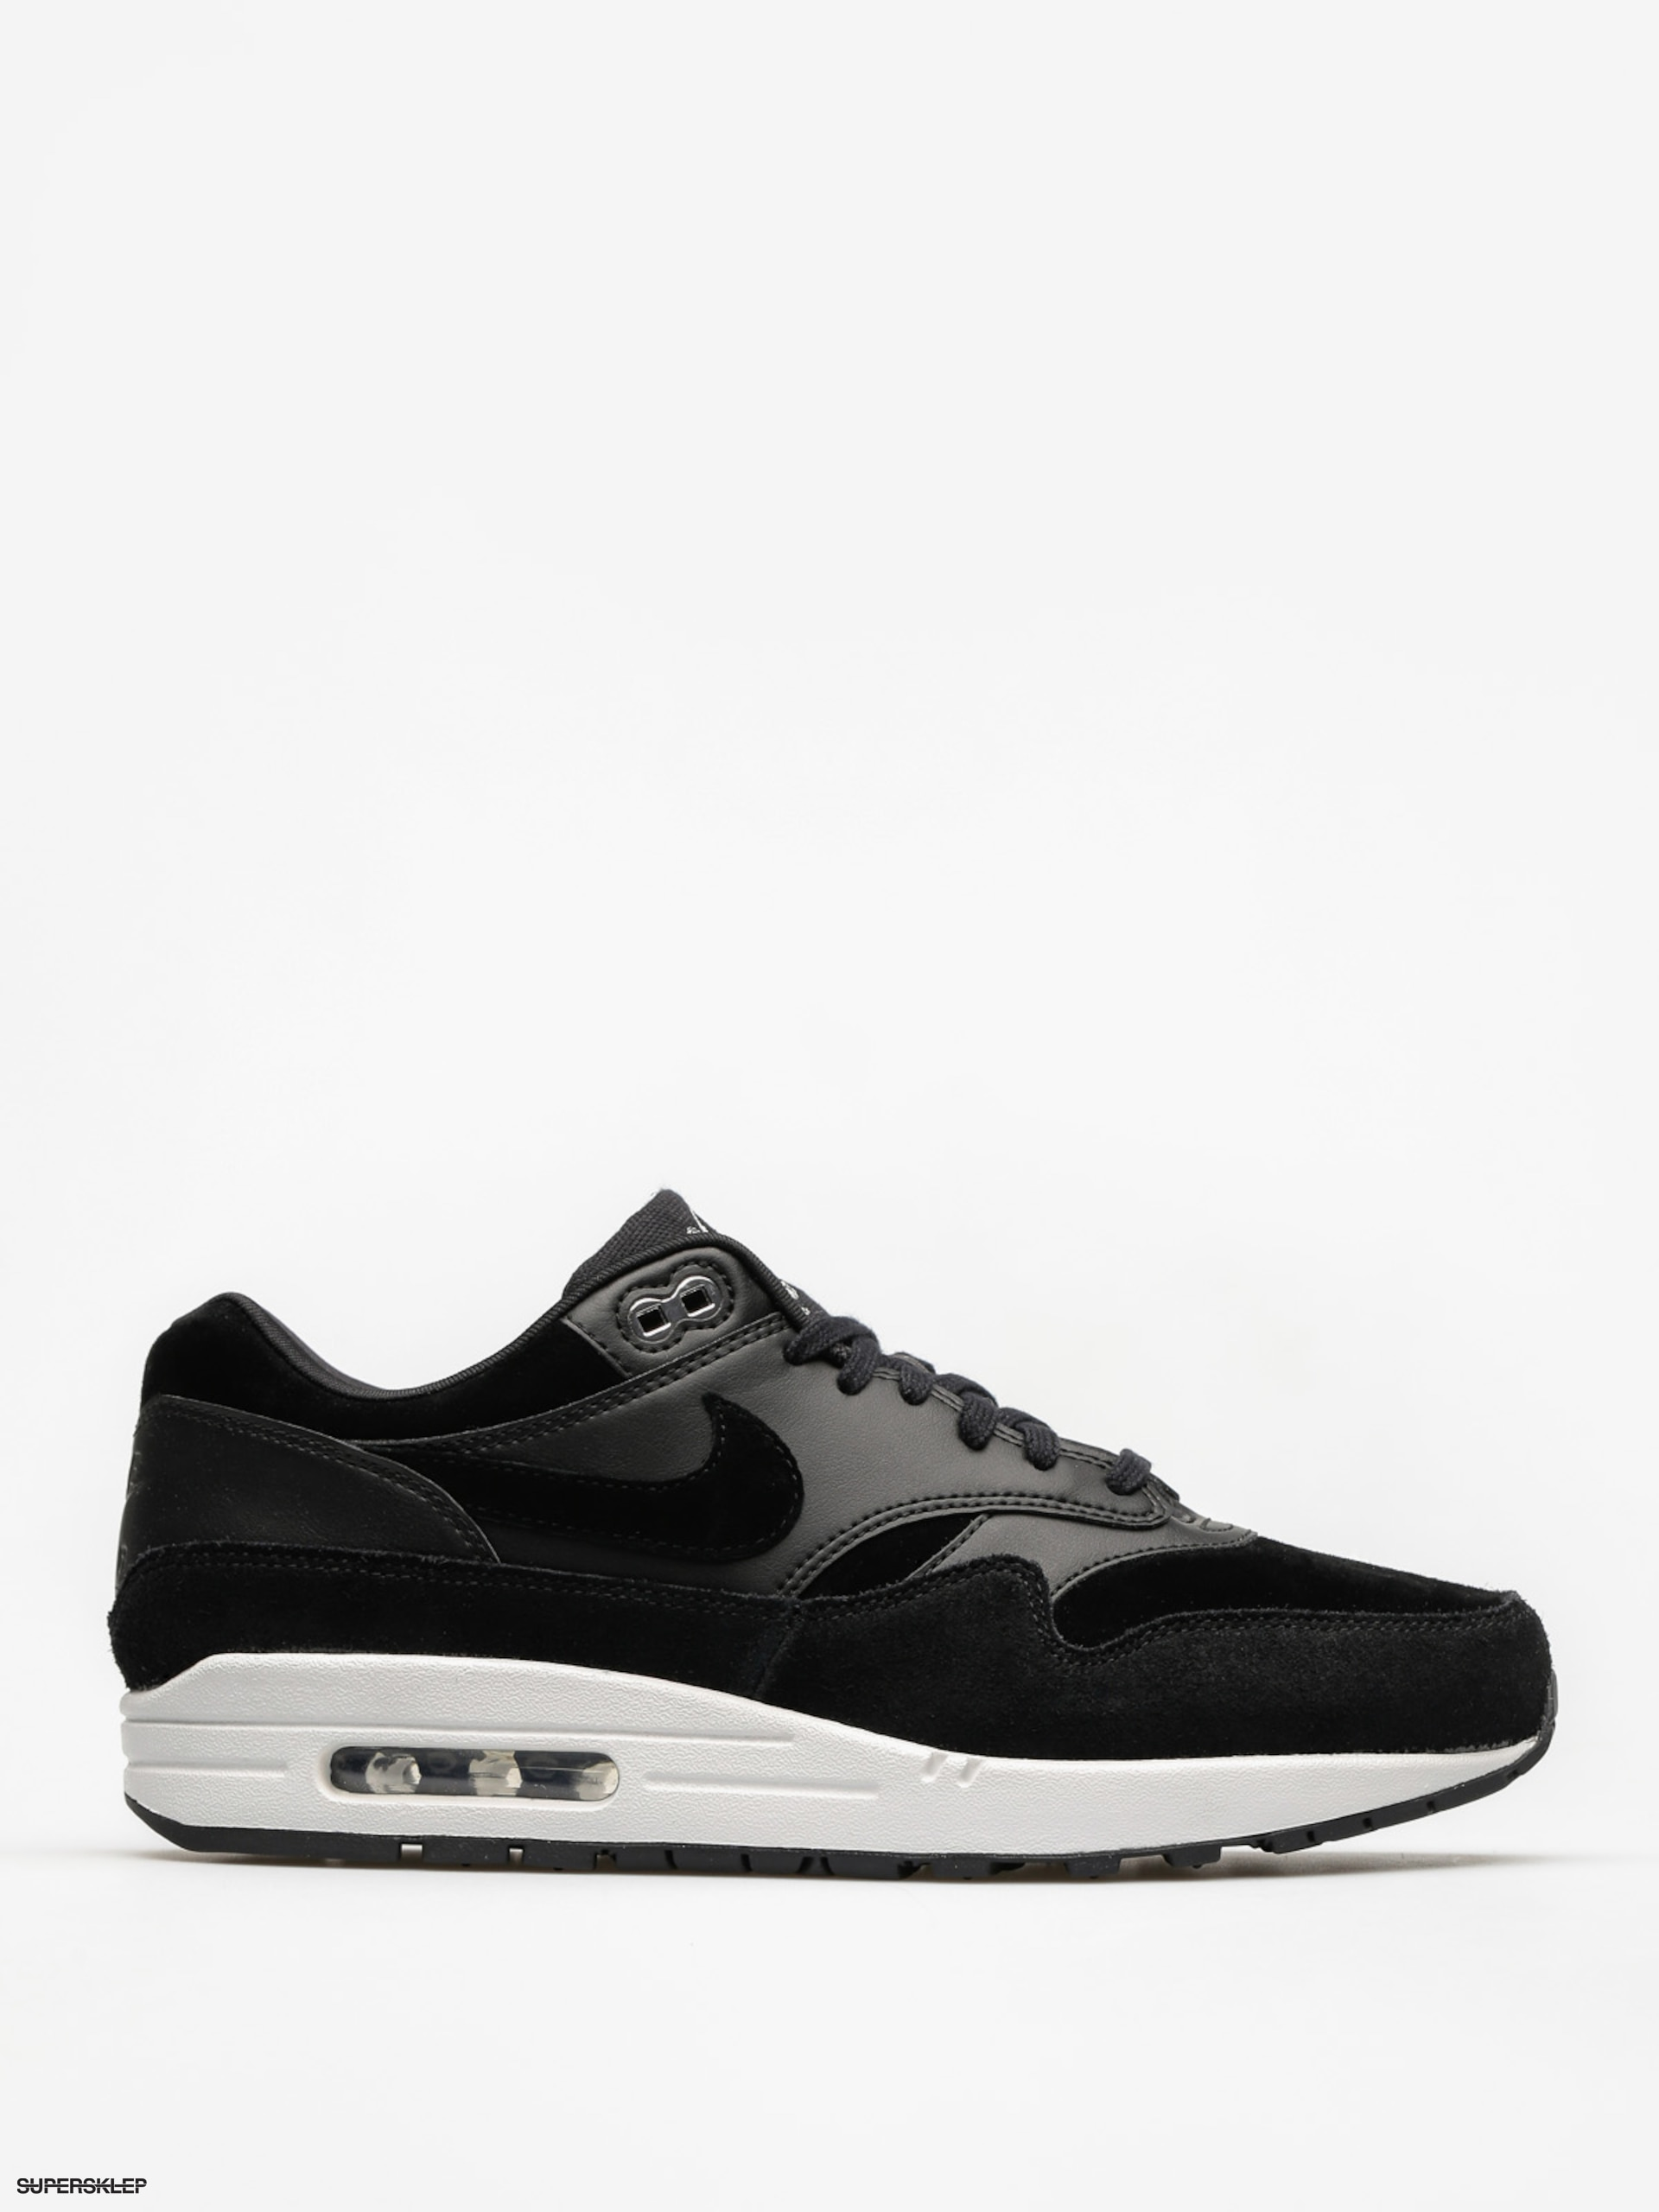 Boty Nike Air Max 1 (Premium black/chrome off white)